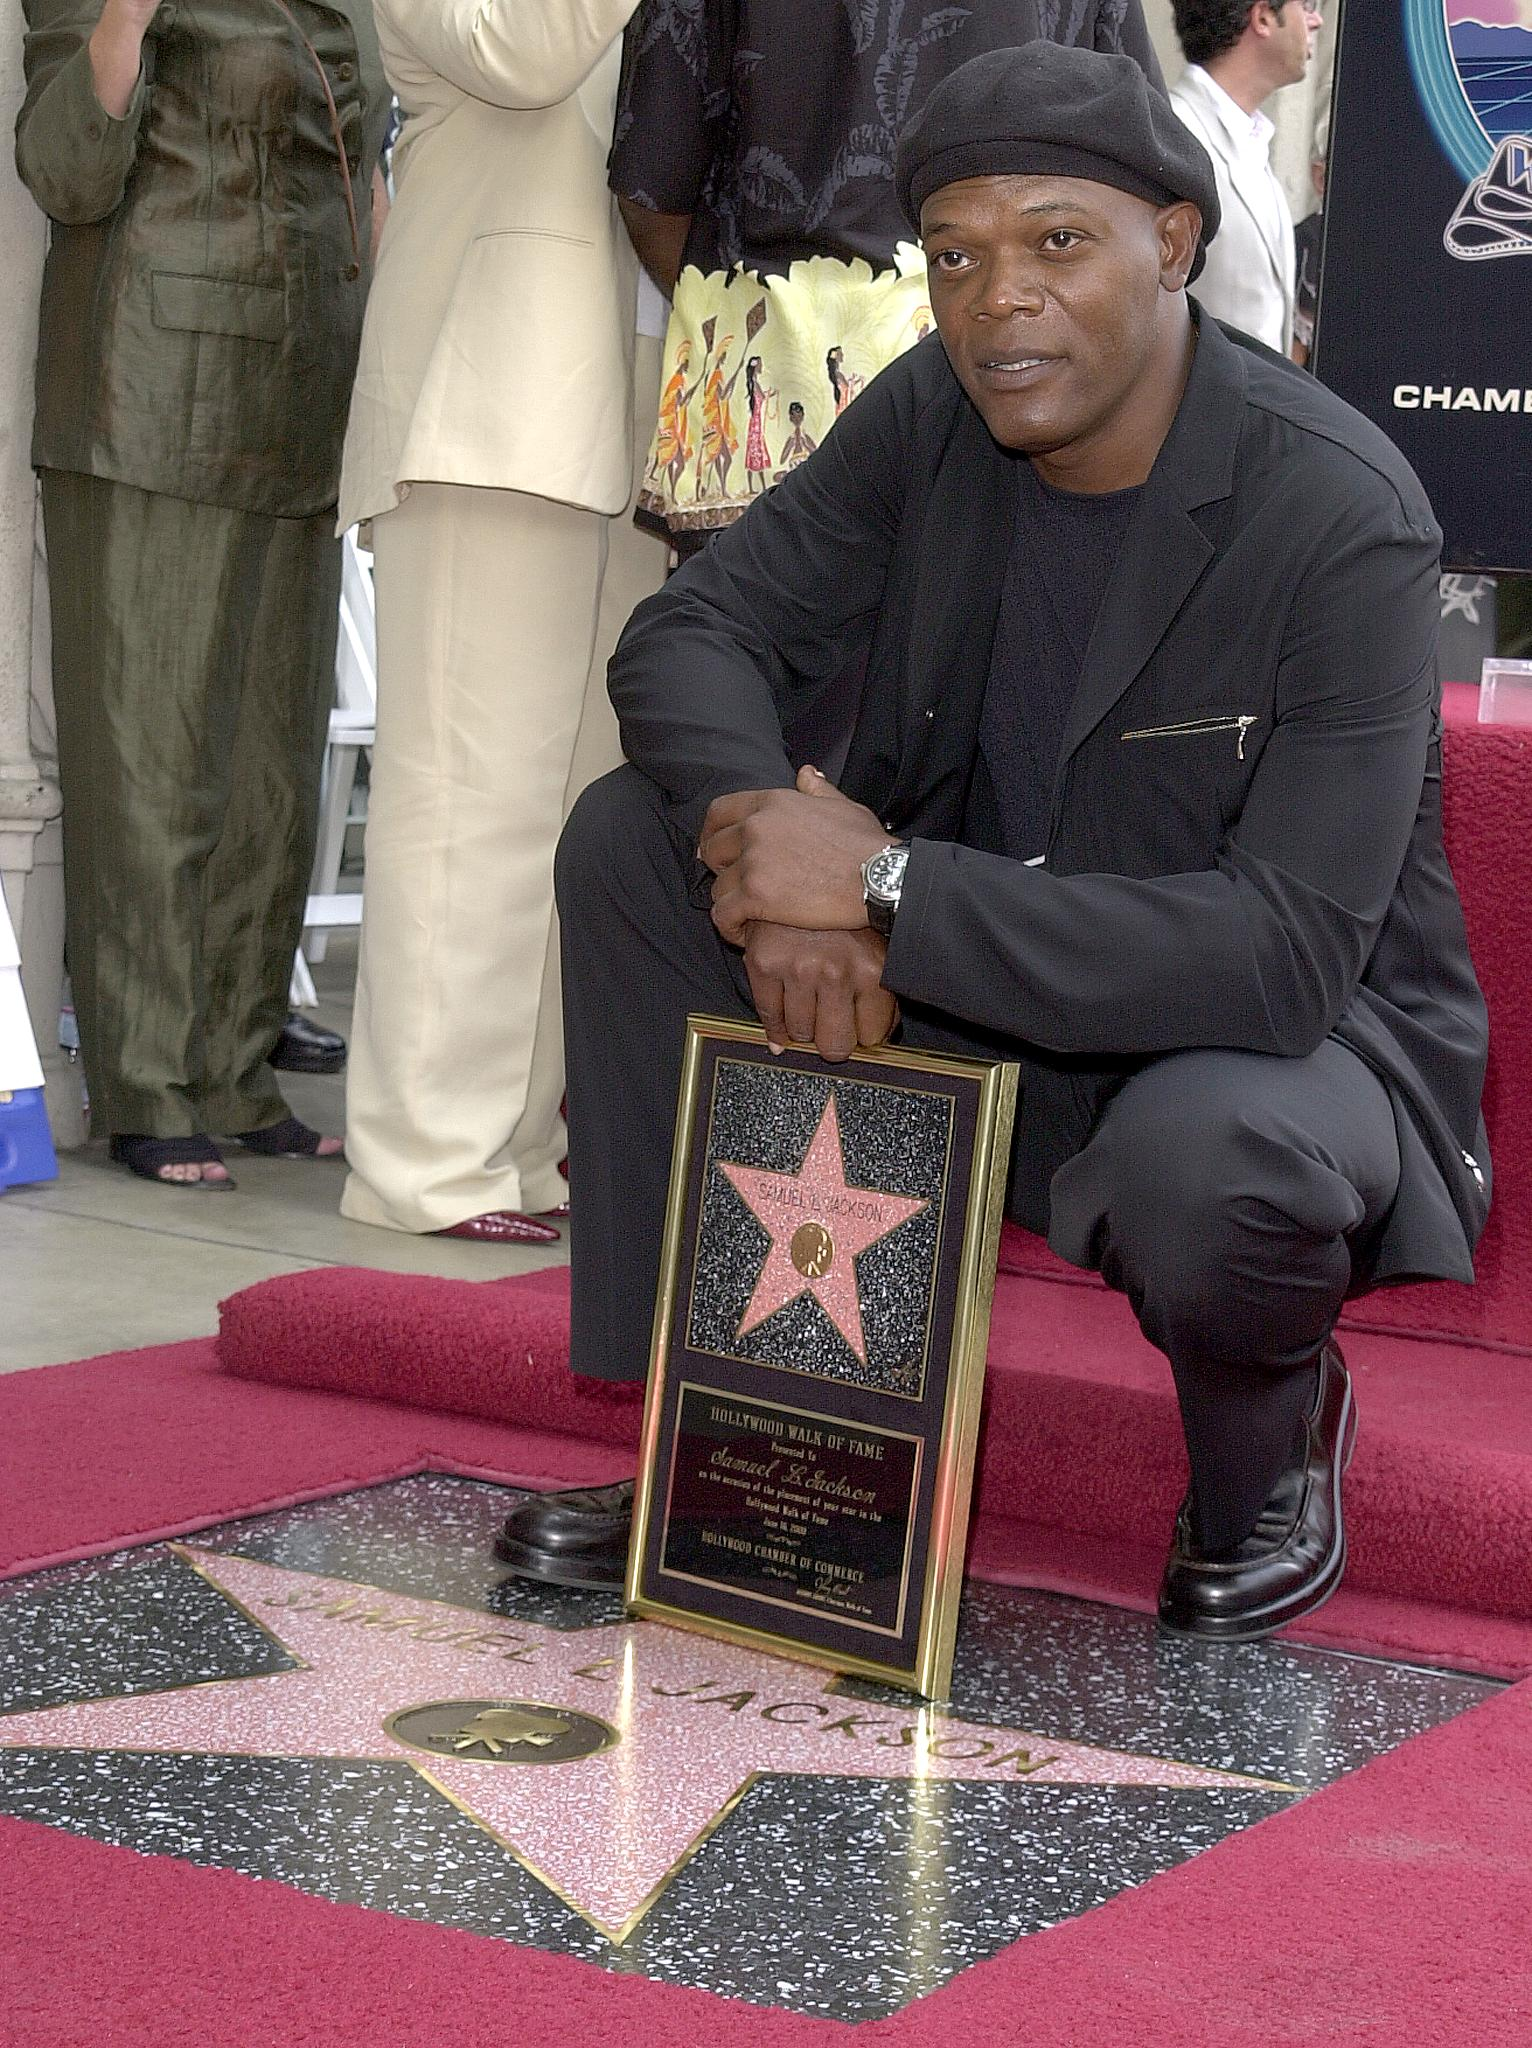 Samuel L. Jackson at the unveiling of his star on the Hollywood Walk of Fame June 16, 2000, in Los Angeles, CA. | Source: Getty Images.